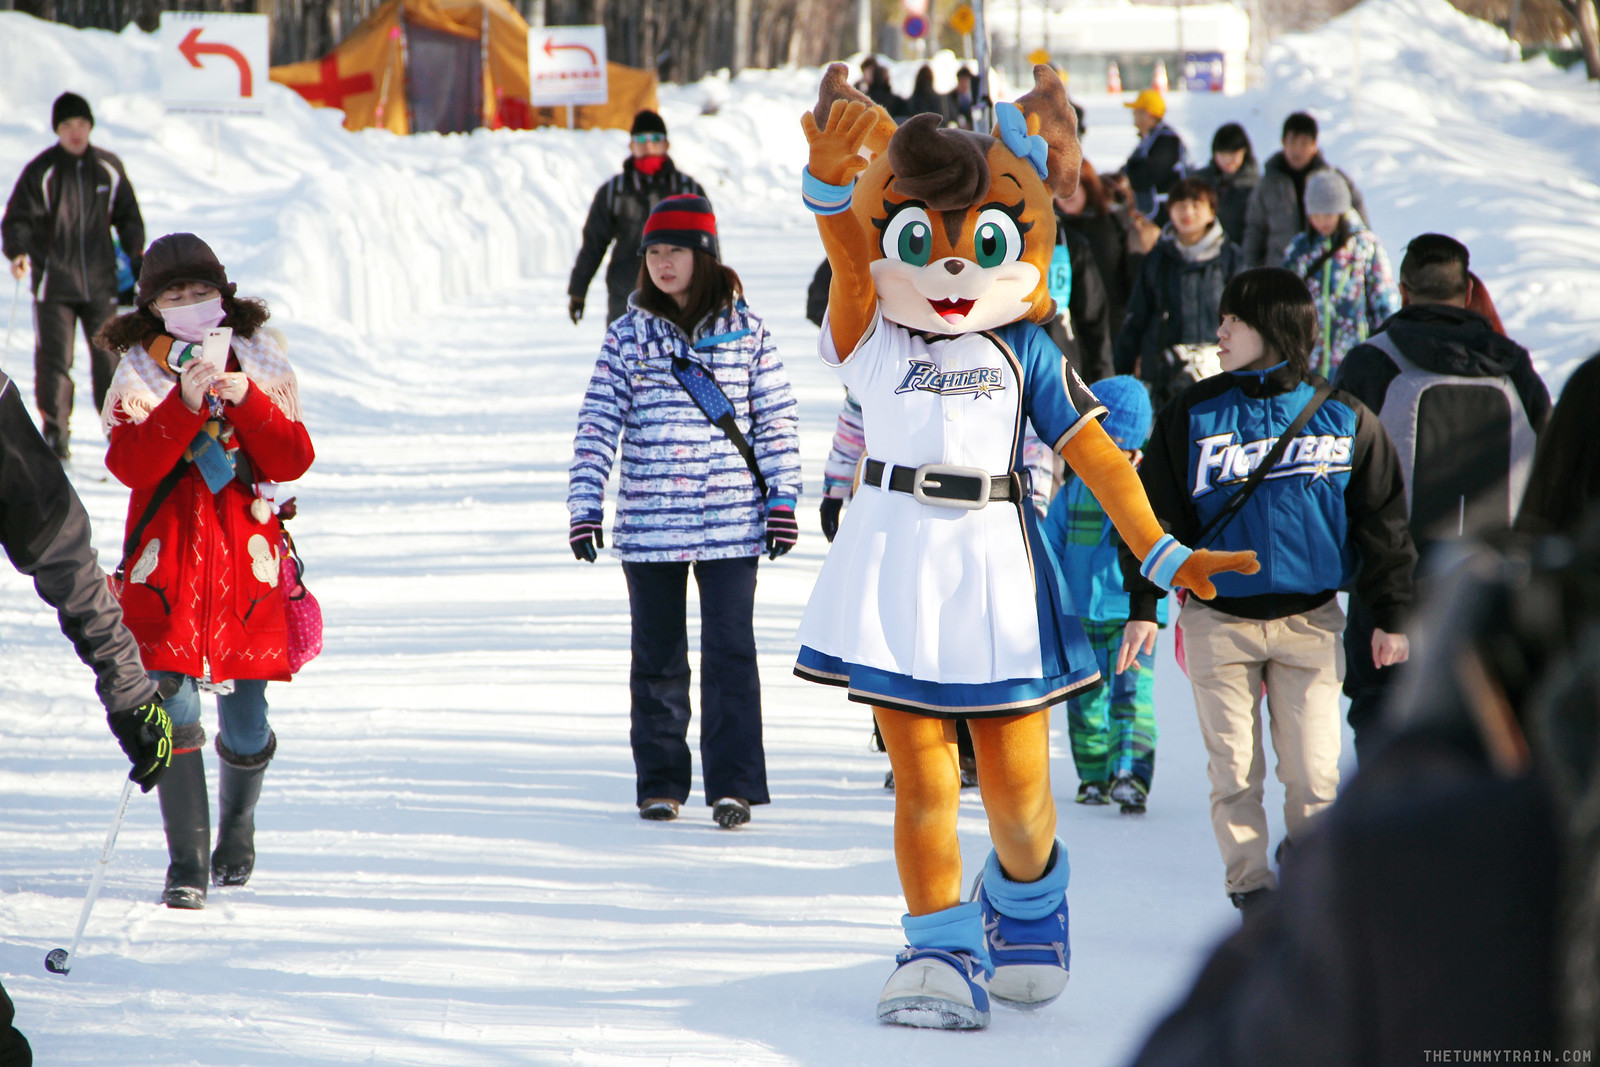 32916675645 1ede1398ee h - Sapporo Snow And Smile: 8 Unforgettable Winter Experiences in Sapporo City